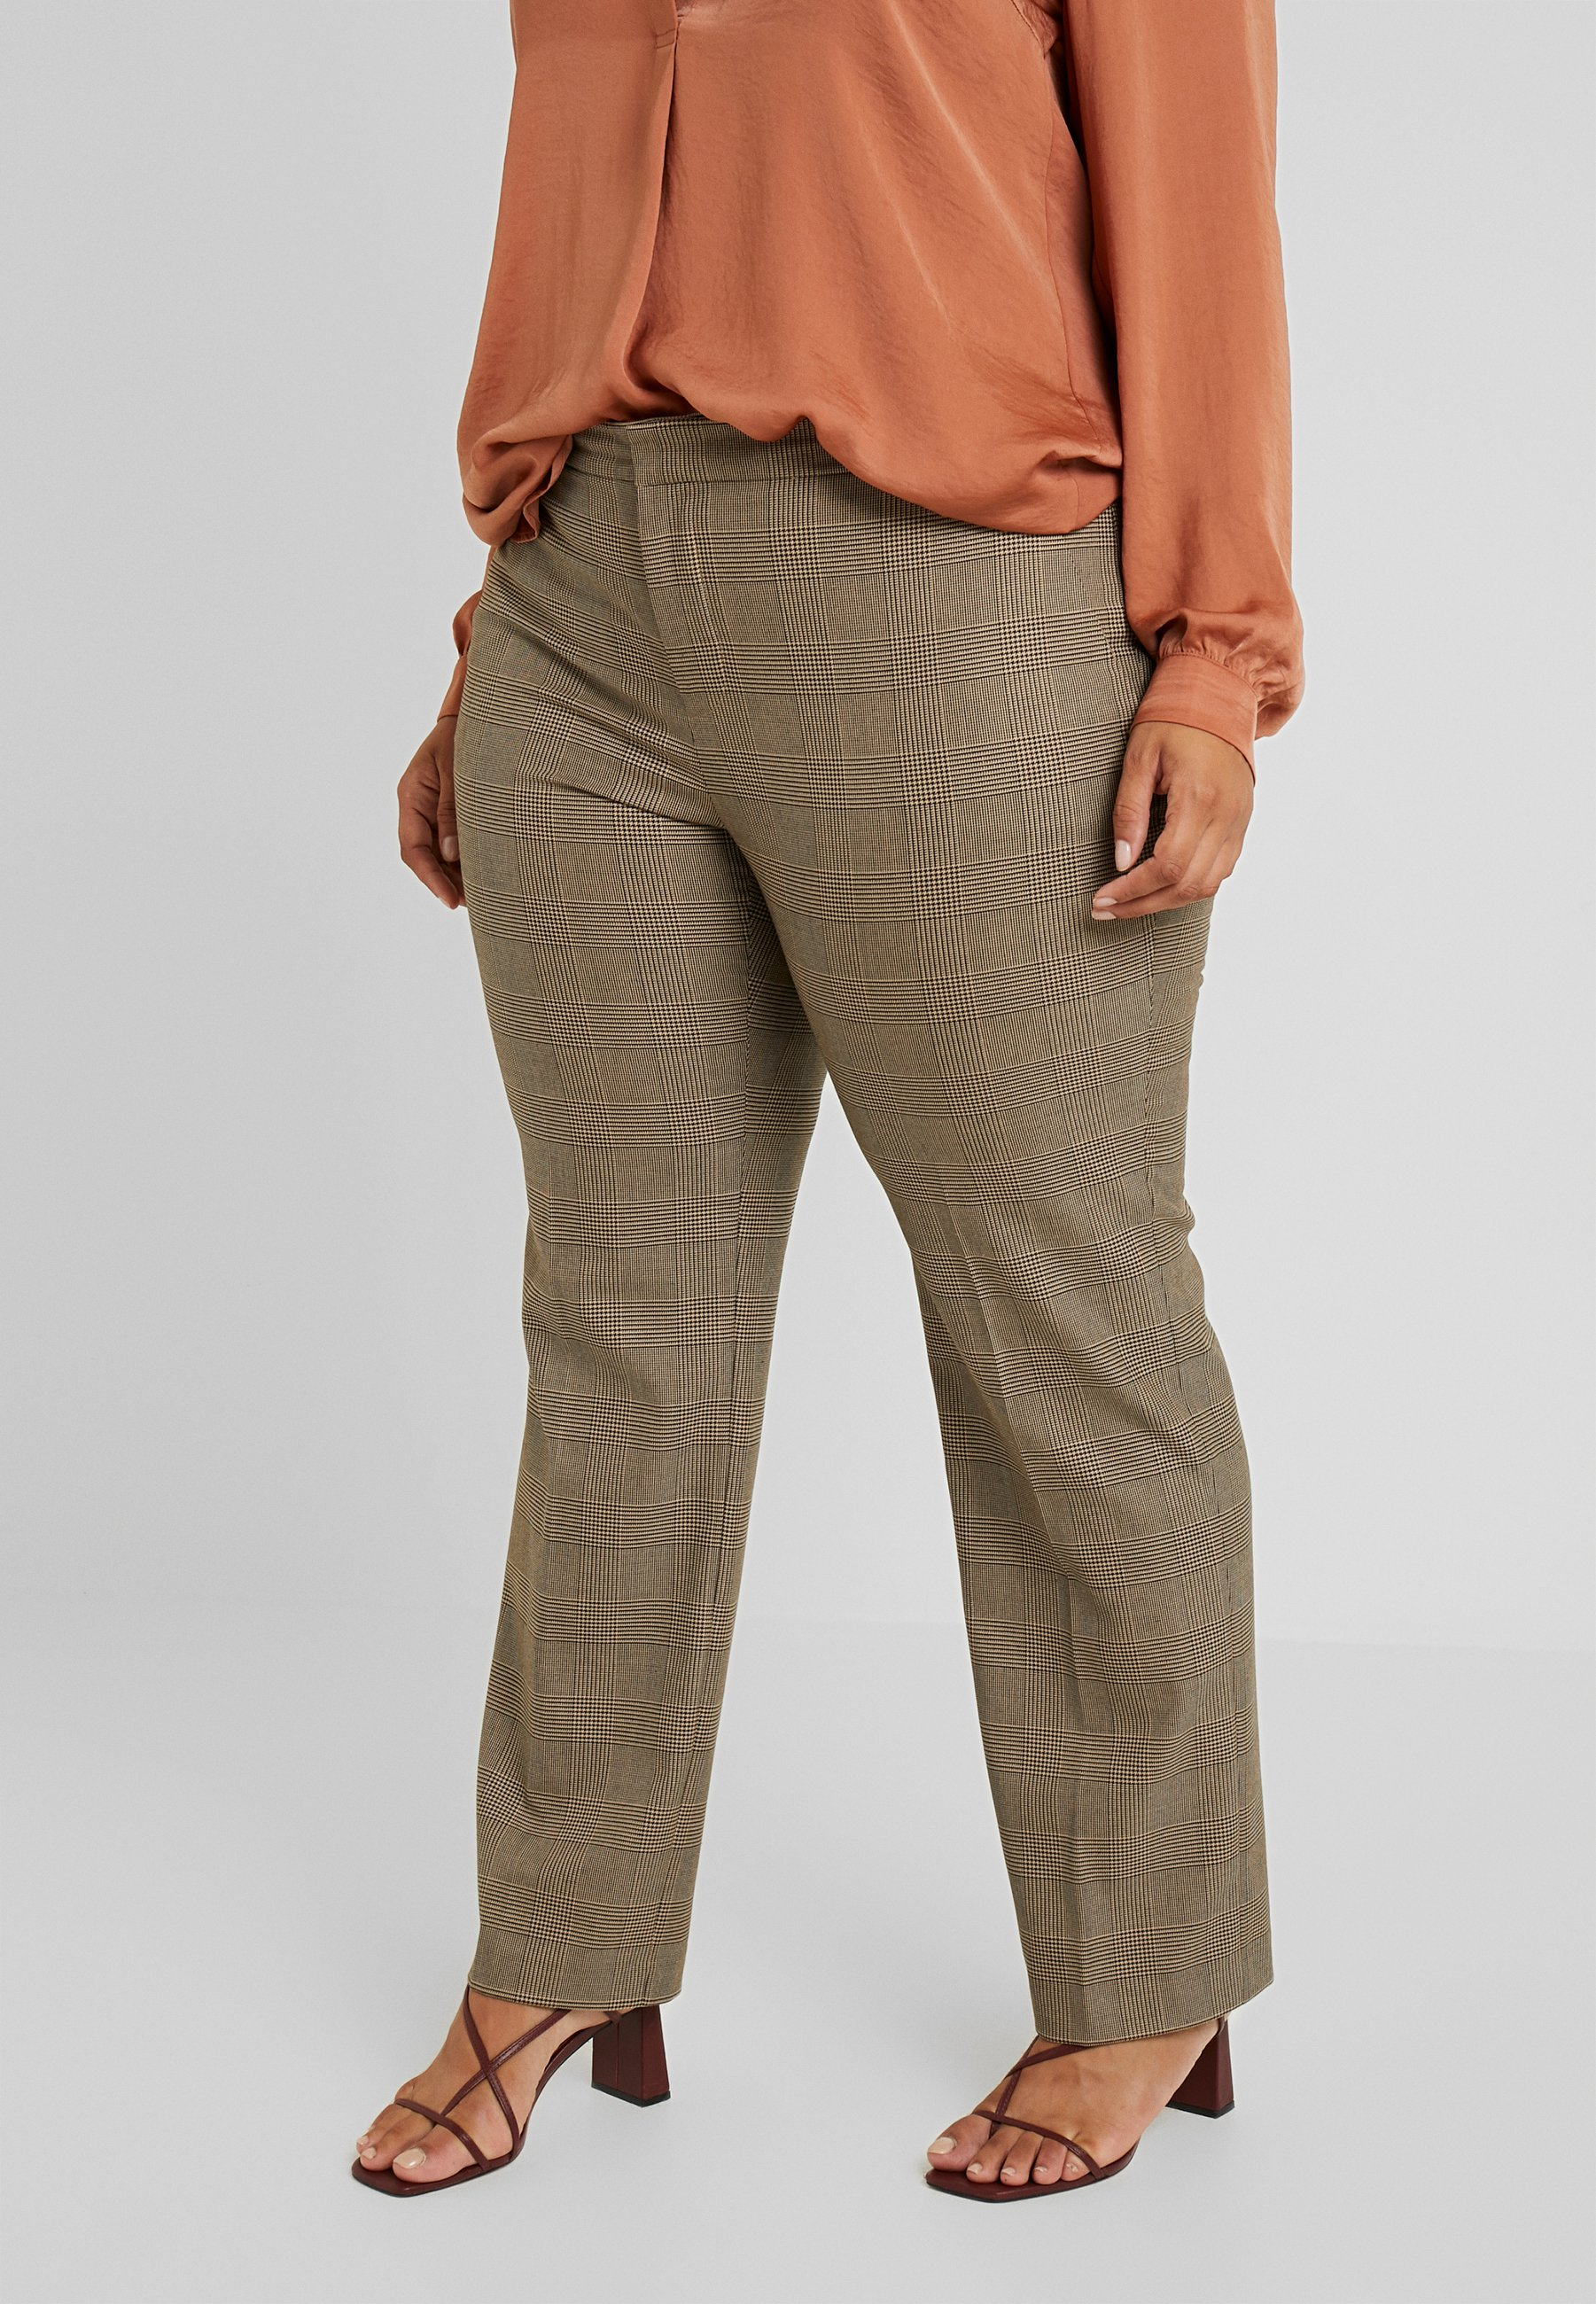 Quartilla Multi Classique straight Brown Woman tan Lauren pantPantalon Ralph 8Okn0wP